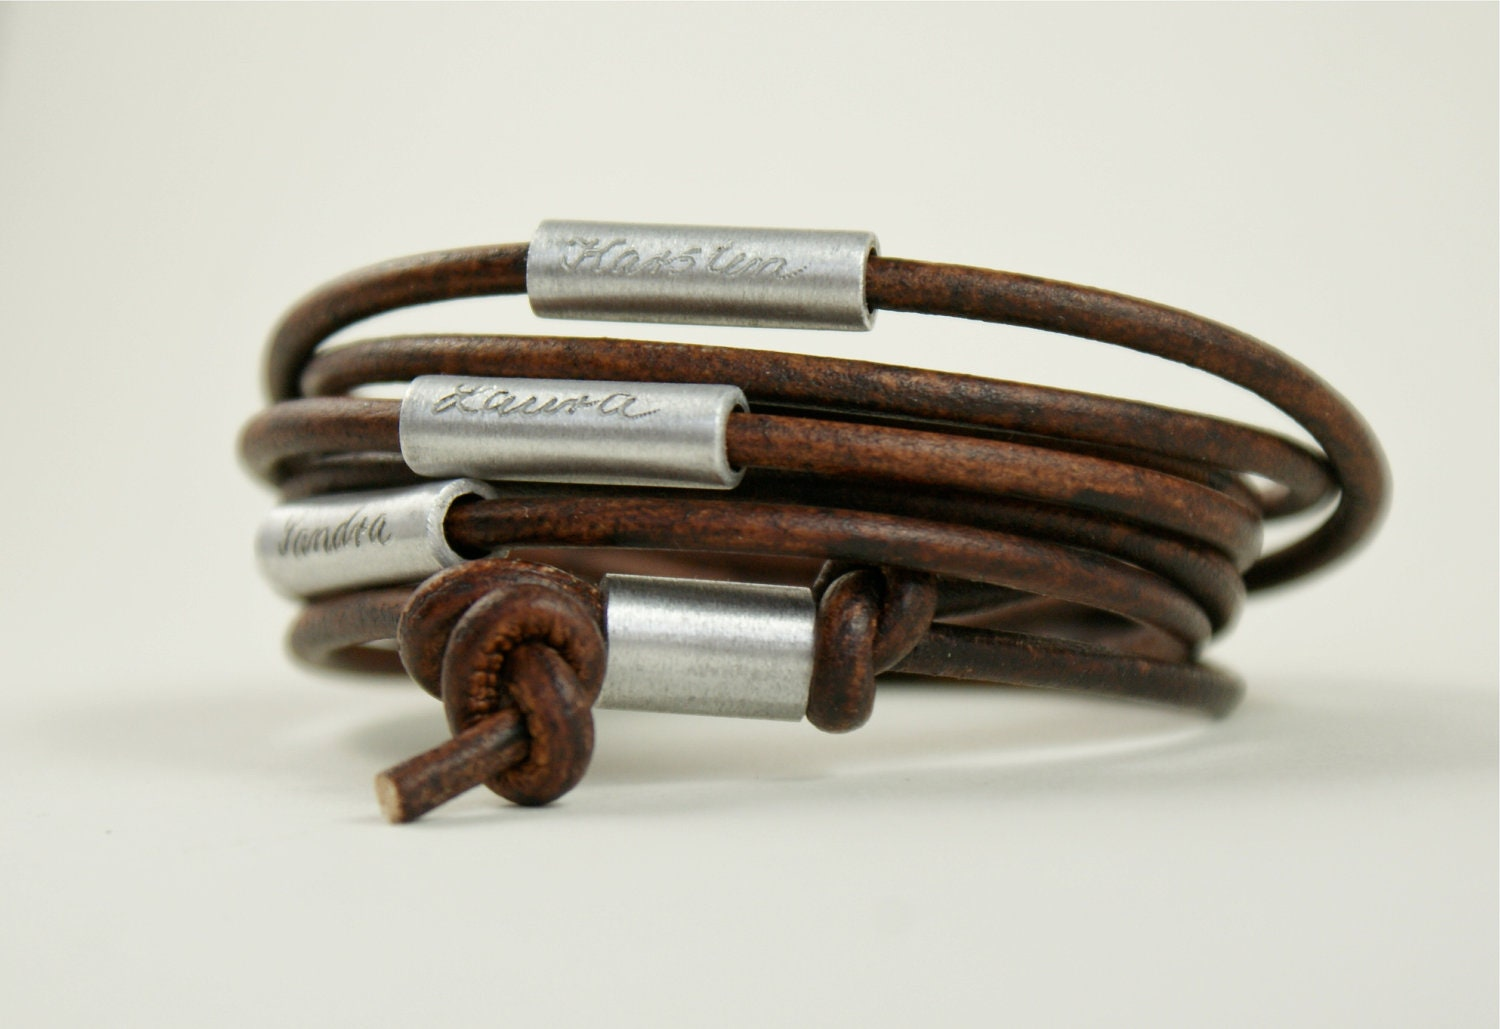 personalized engraved leather bracelet wrapped